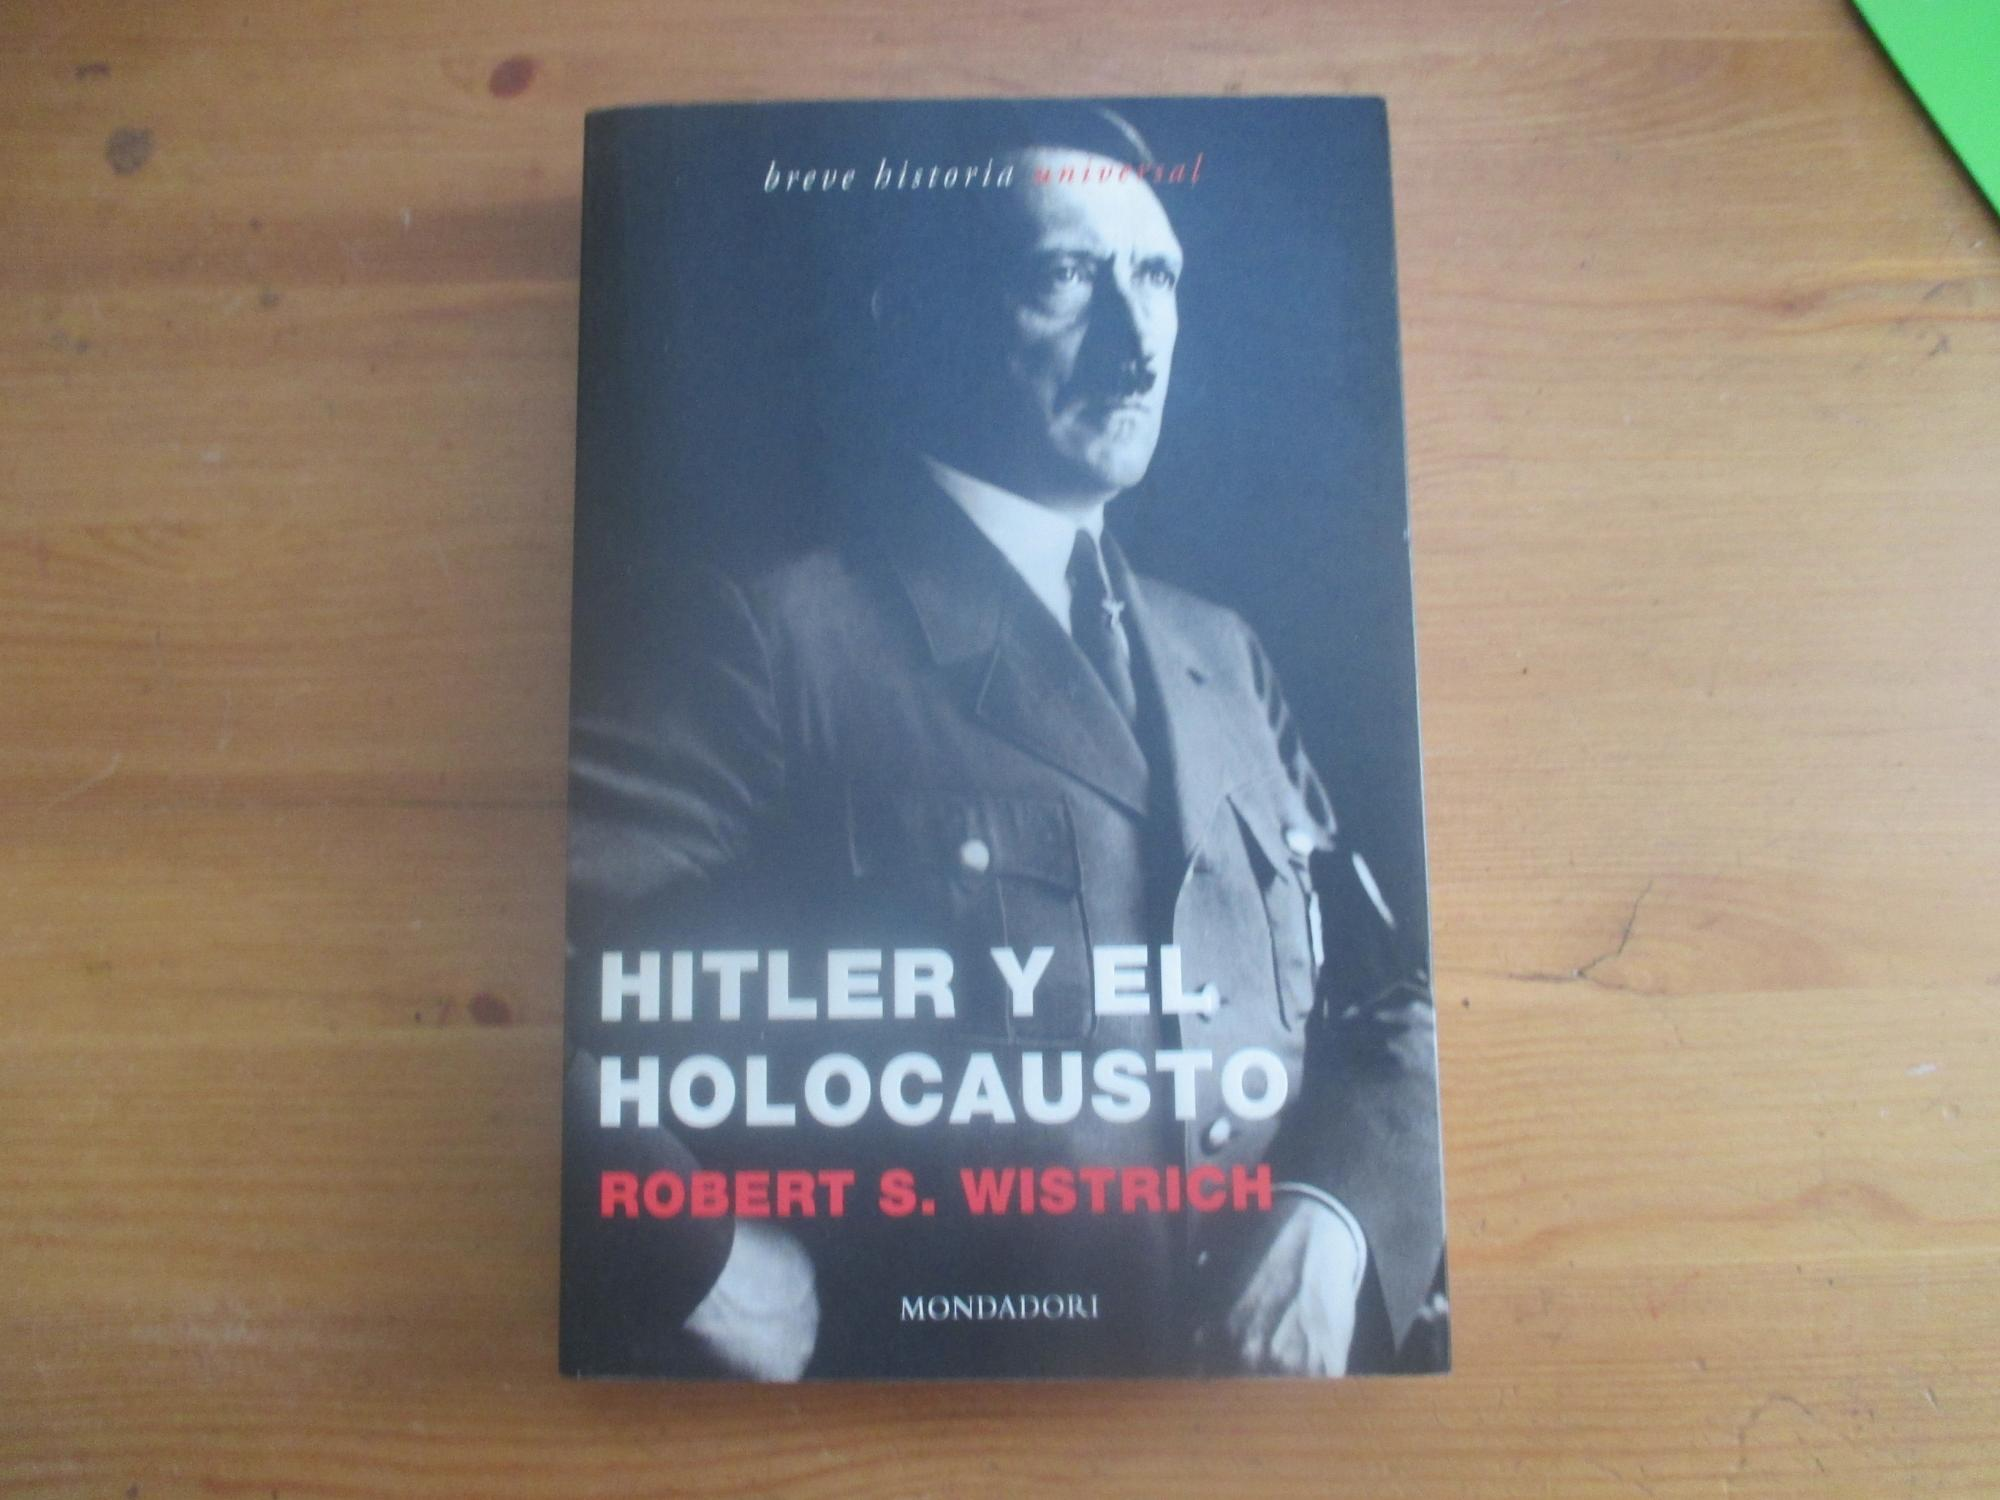 Project MUSE - Recently Published Works in Holocaust and Genocide Studies